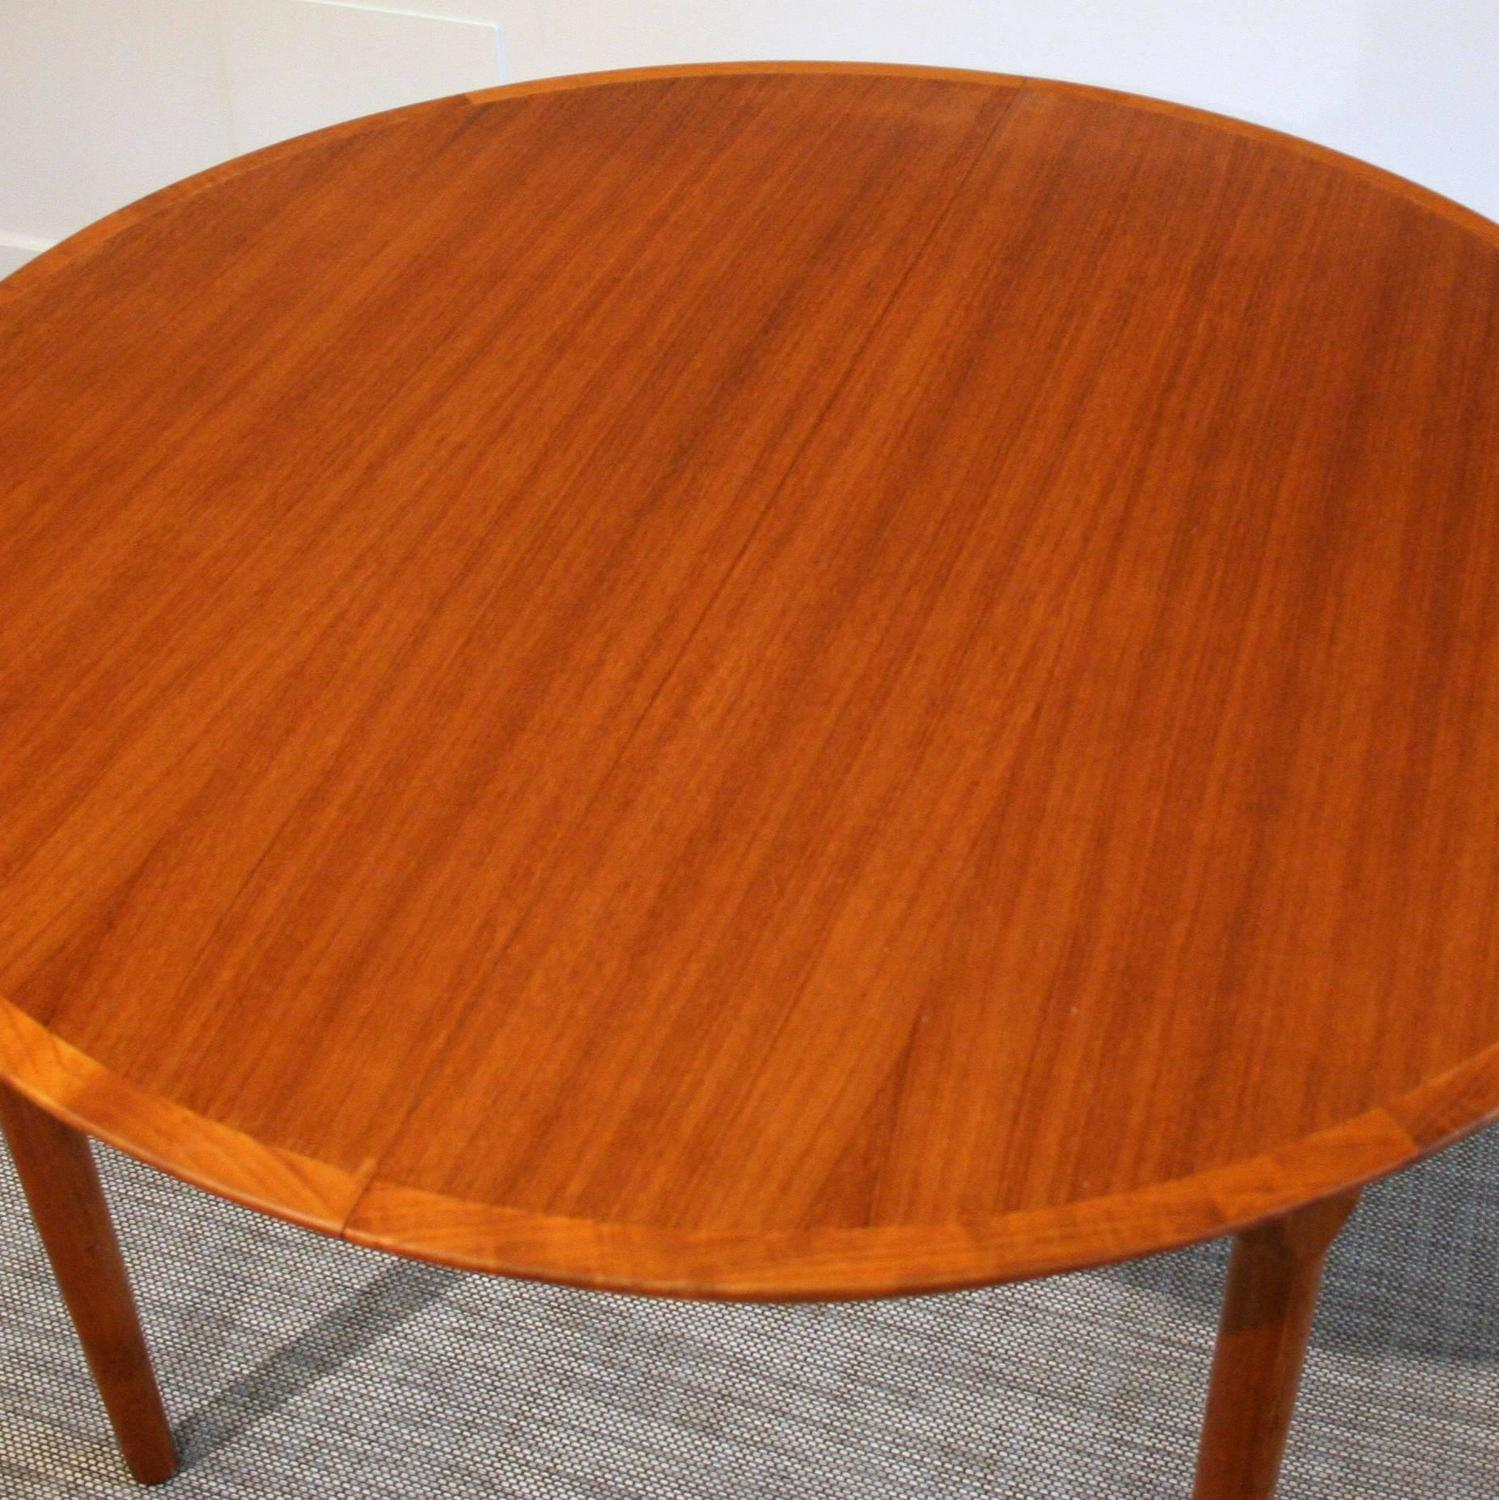 Vintage Danish Teak Round Dining Table at 1stdibs : IMG3551z from www.1stdibs.com size 1499 x 1500 jpeg 246kB